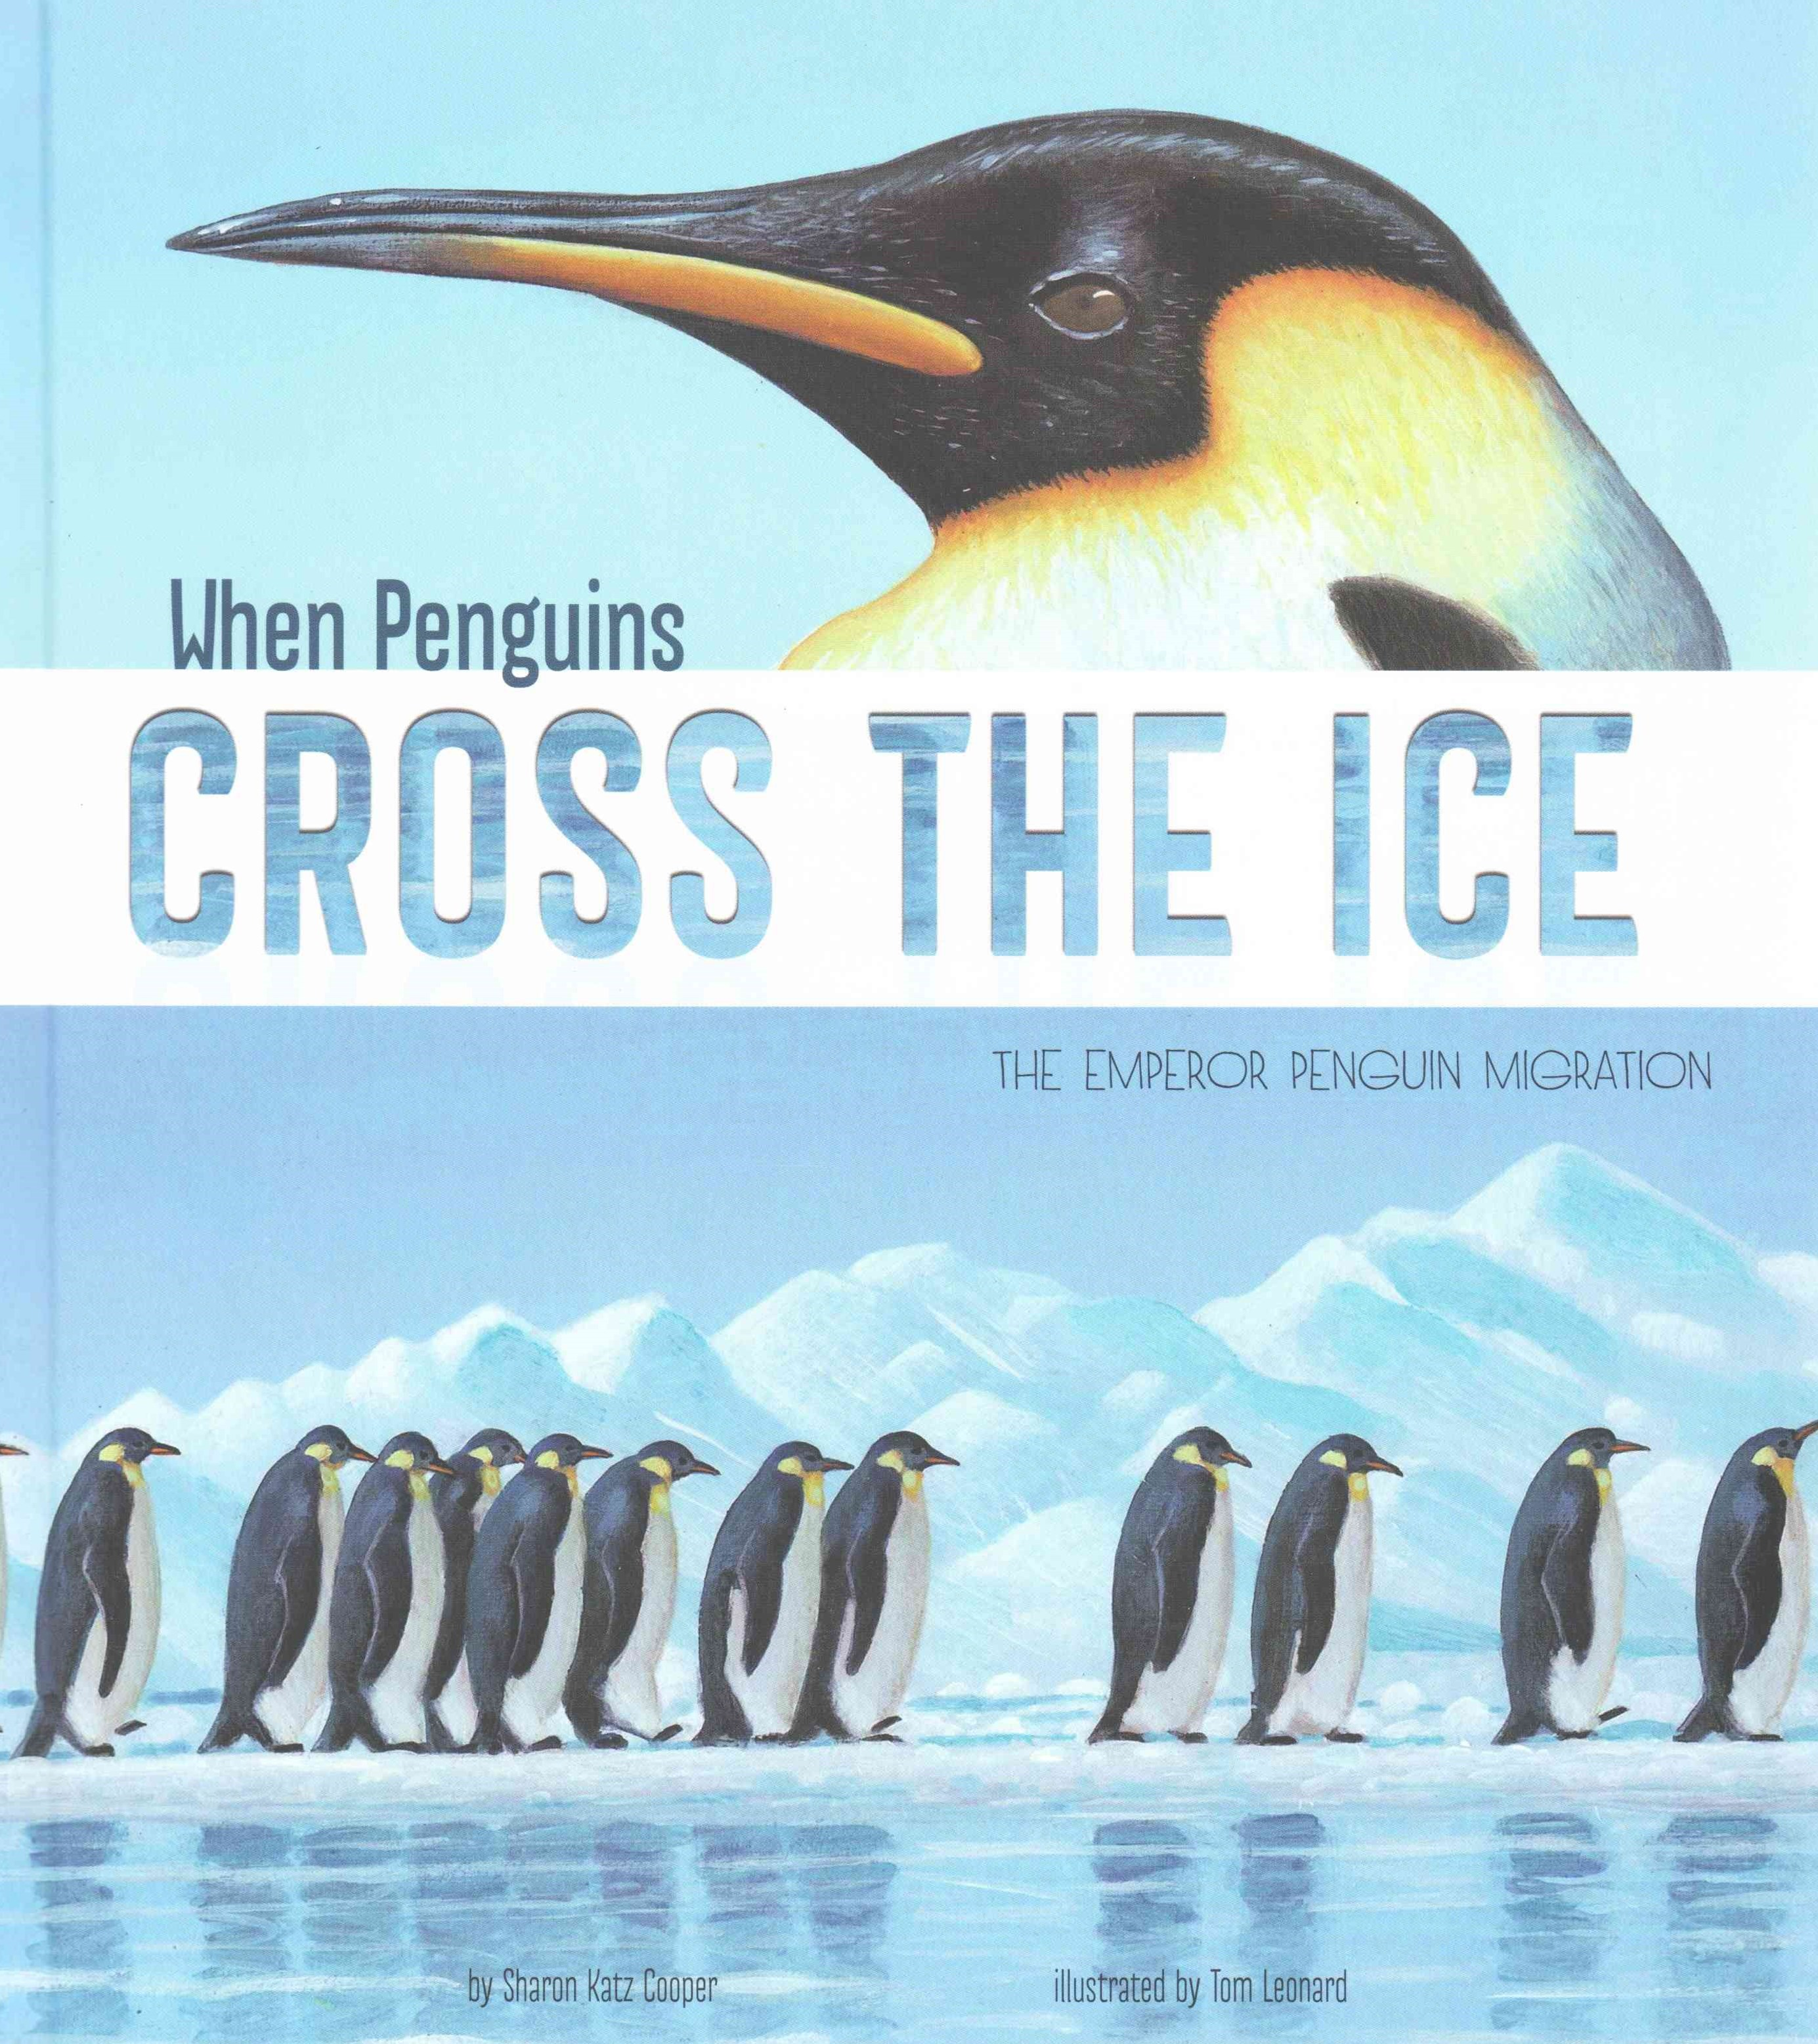 When Penguins Cross the Ice